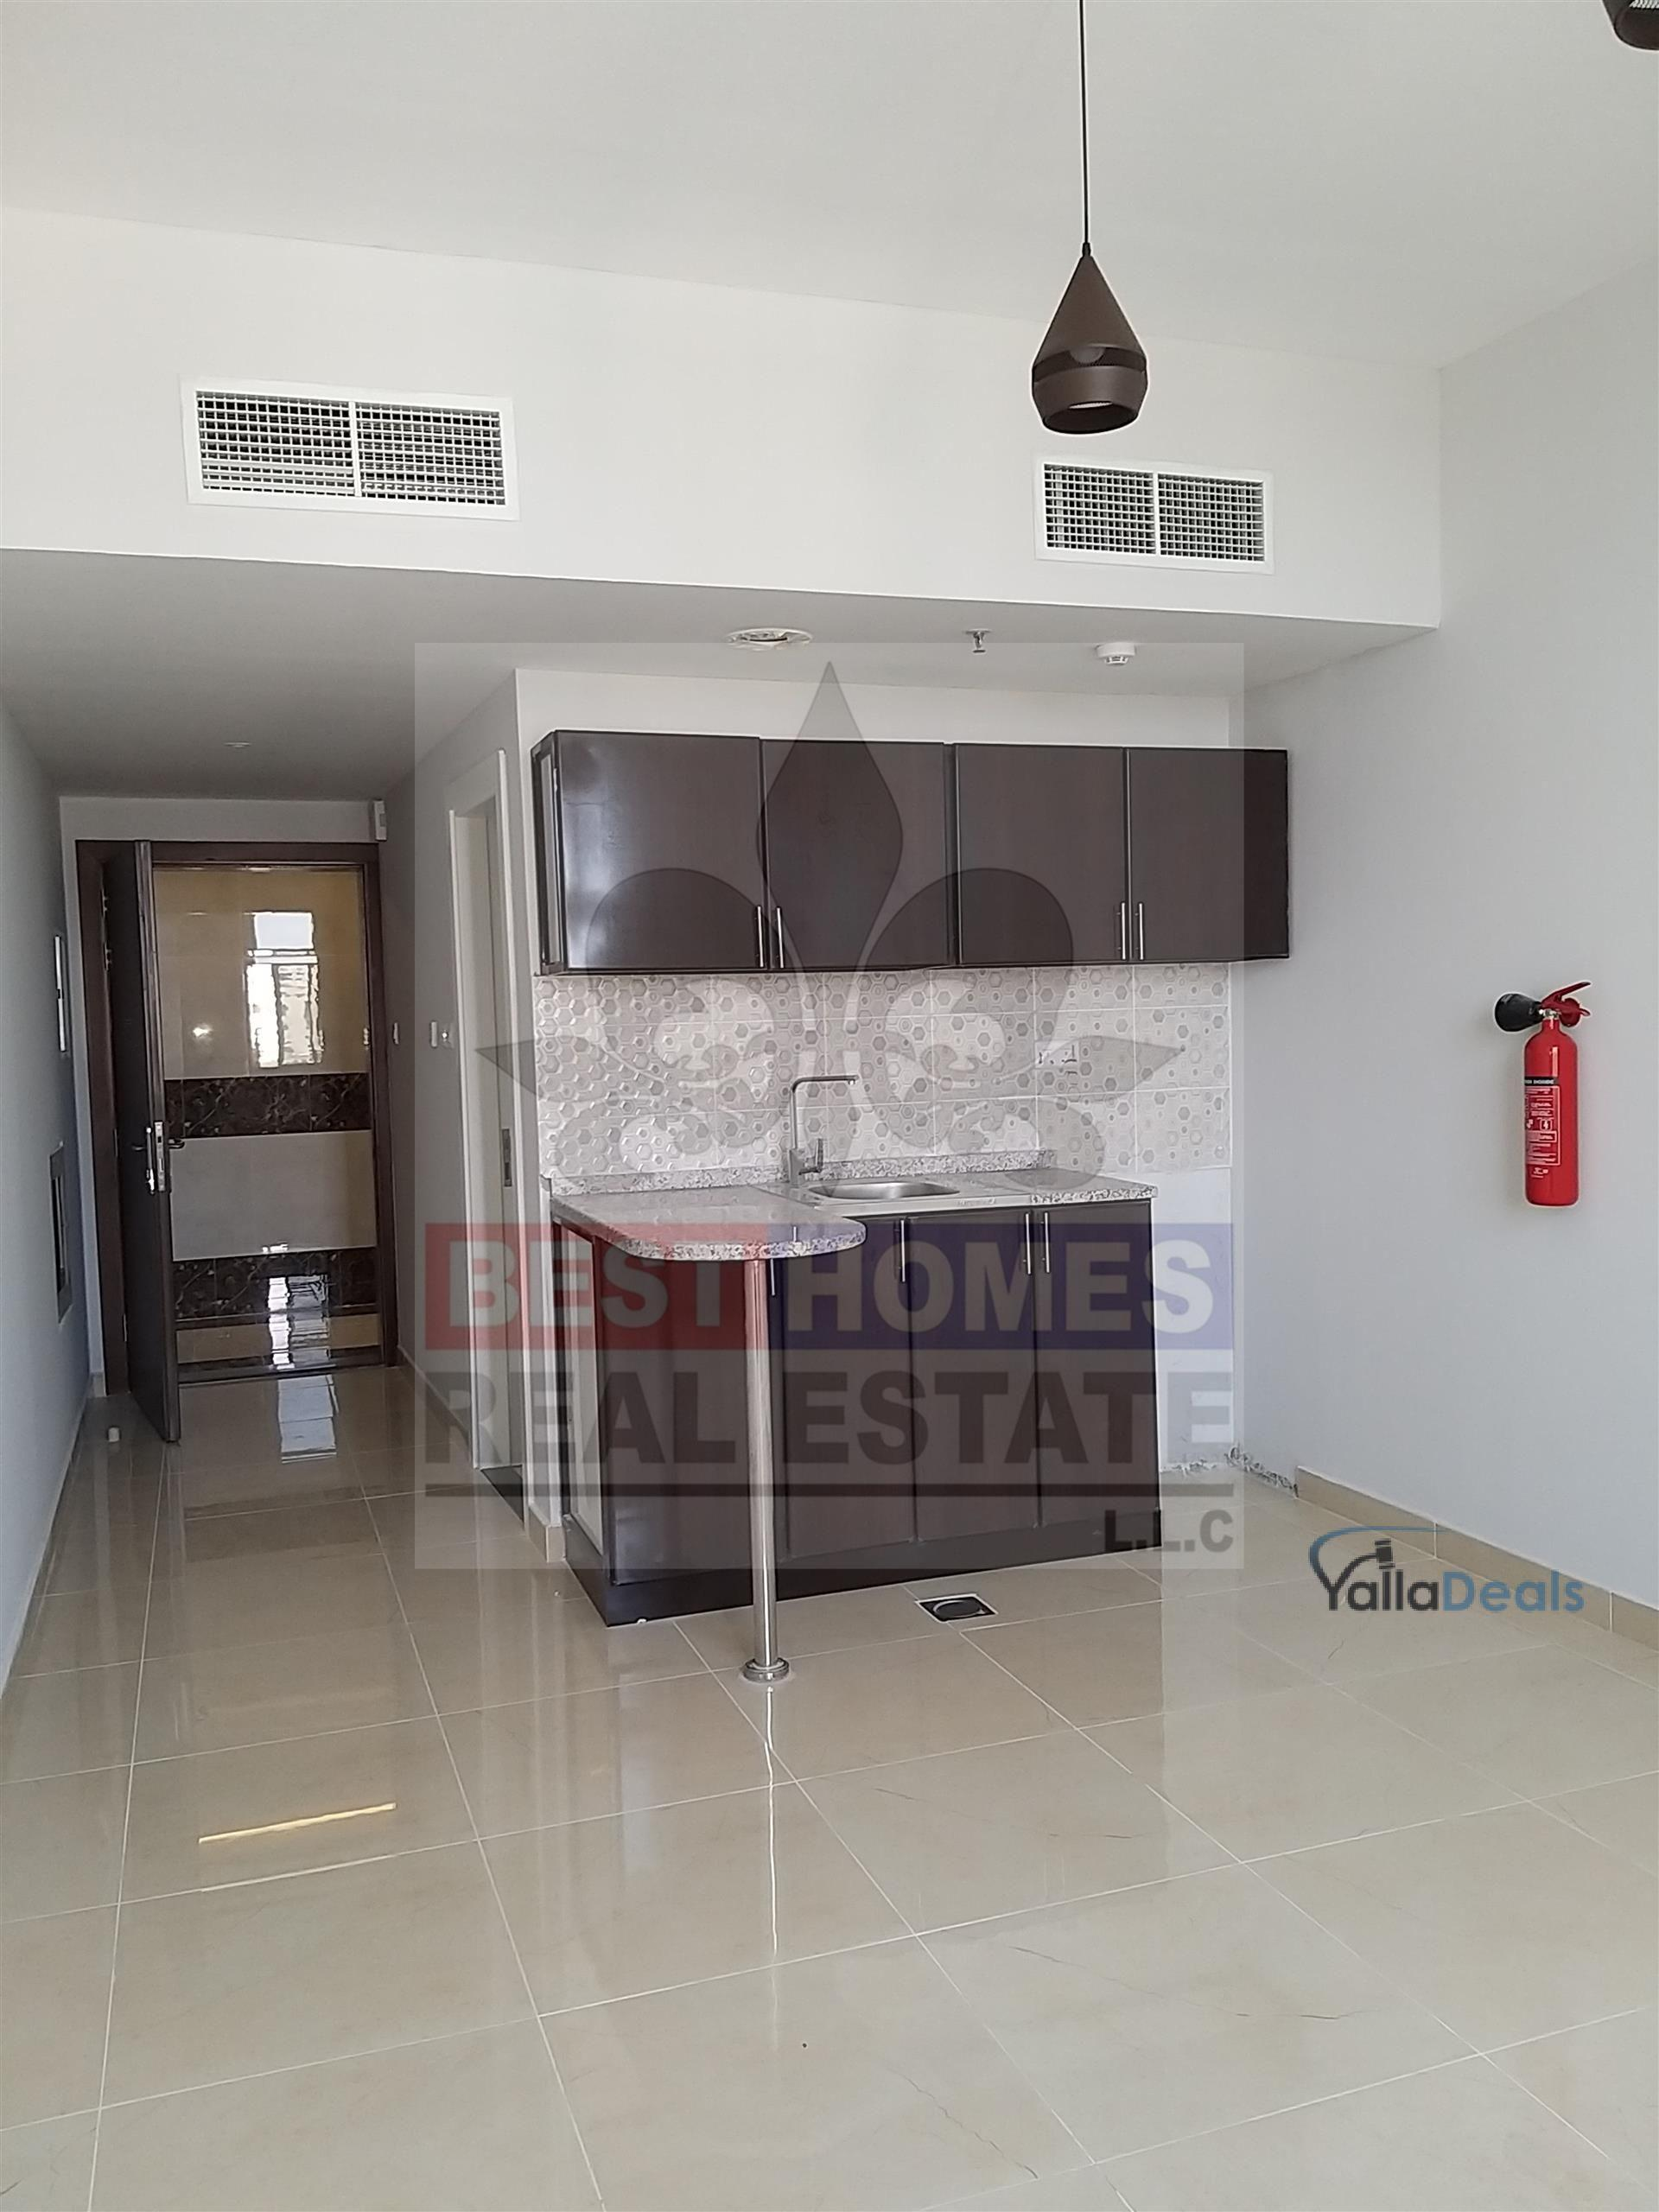 Apartments for Rent in Al Rawada, Ajman